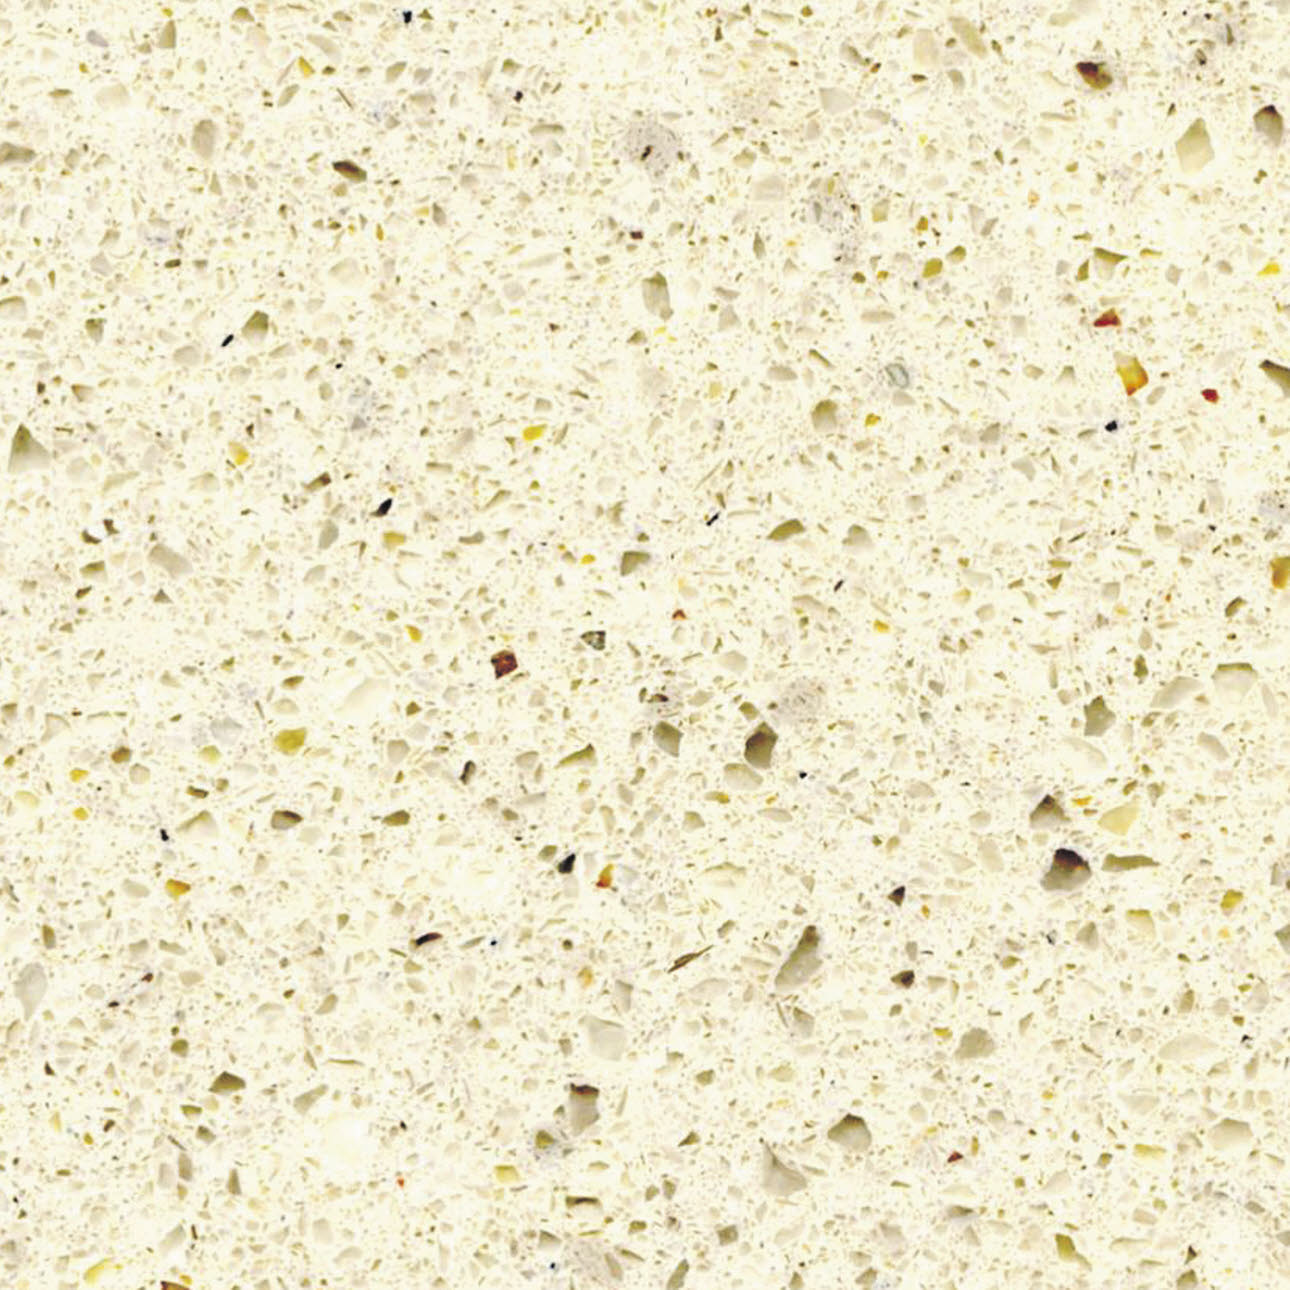 Sienna Quartz granite kitchen worktop, close up